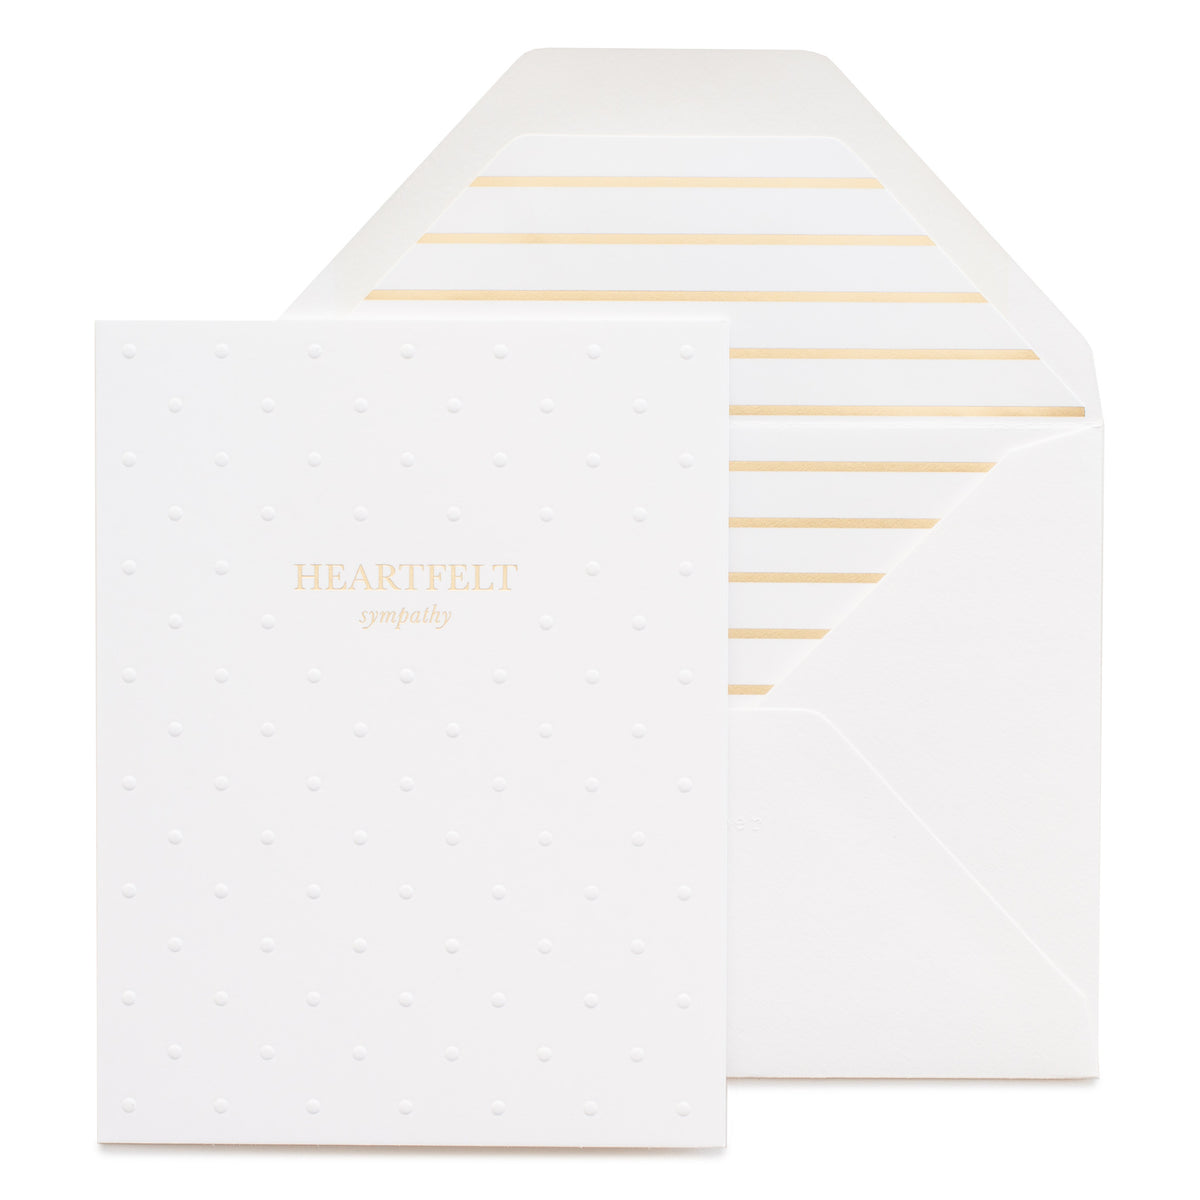 White embossed dot card printed with gold foil heartfelt sympathy